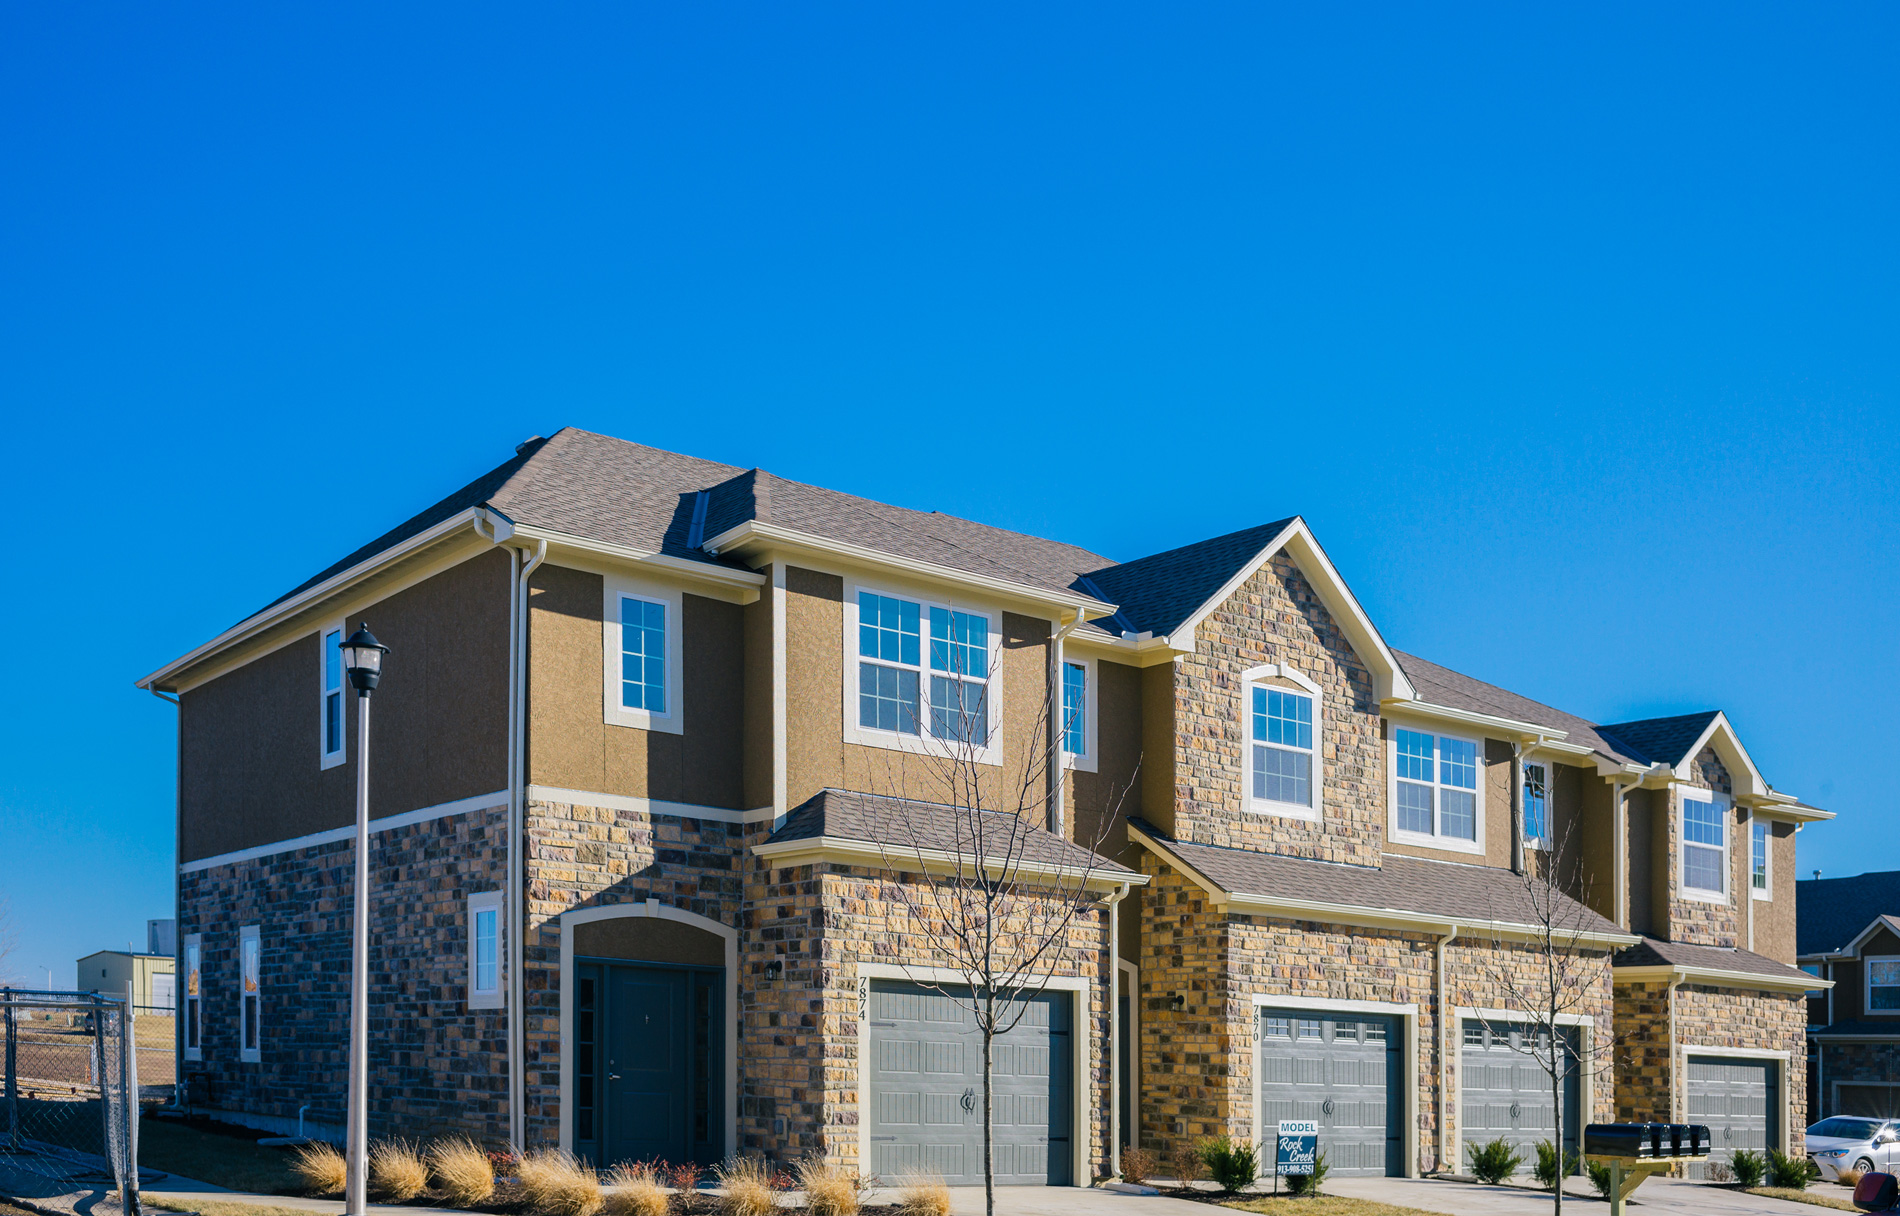 Rockwood Commons Townhomes